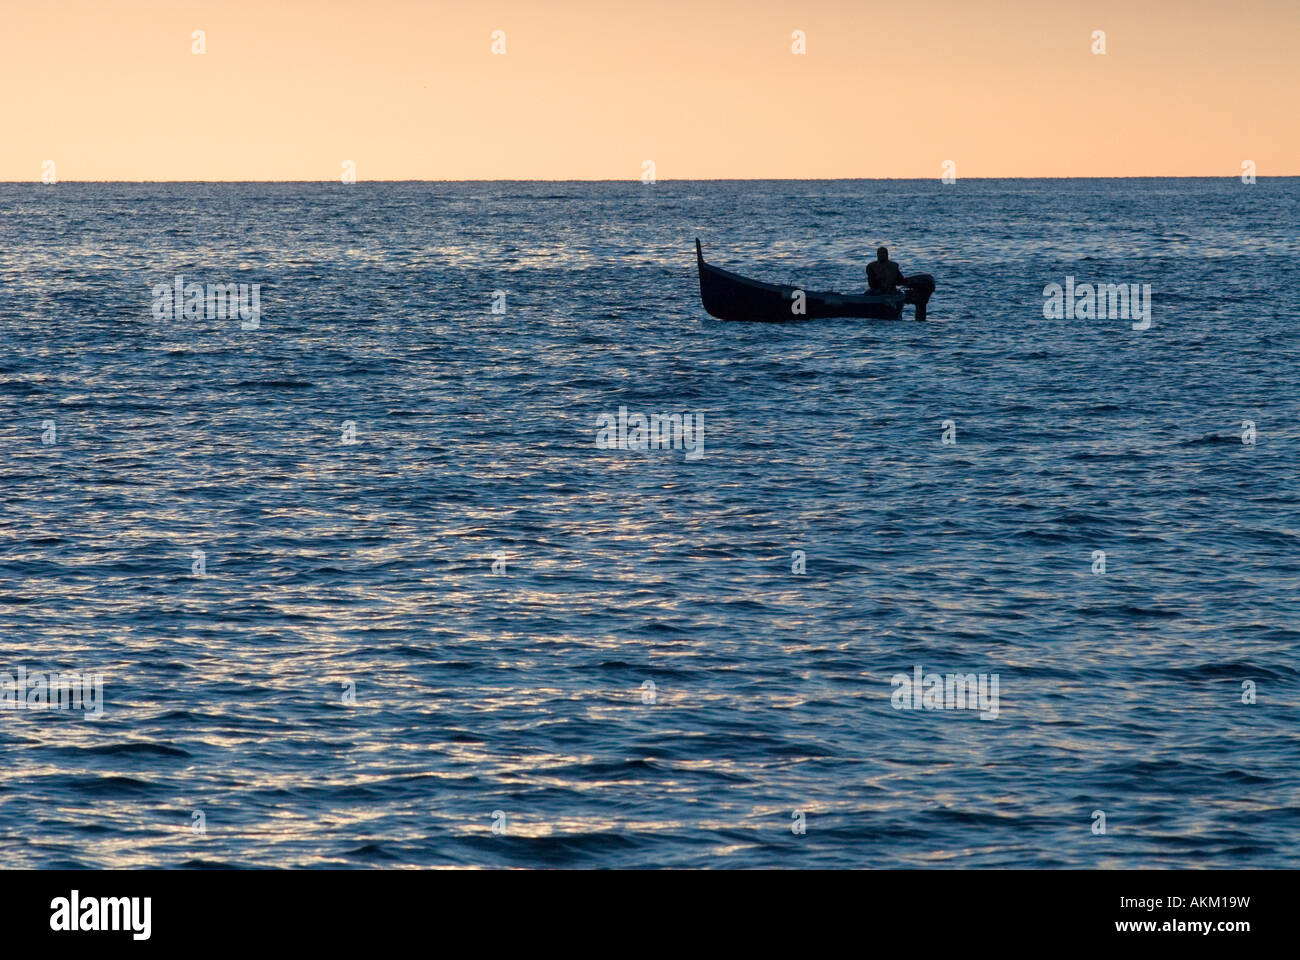 small fisher boat in evening National Park Cinque Terre Liguria Italy - Stock Image